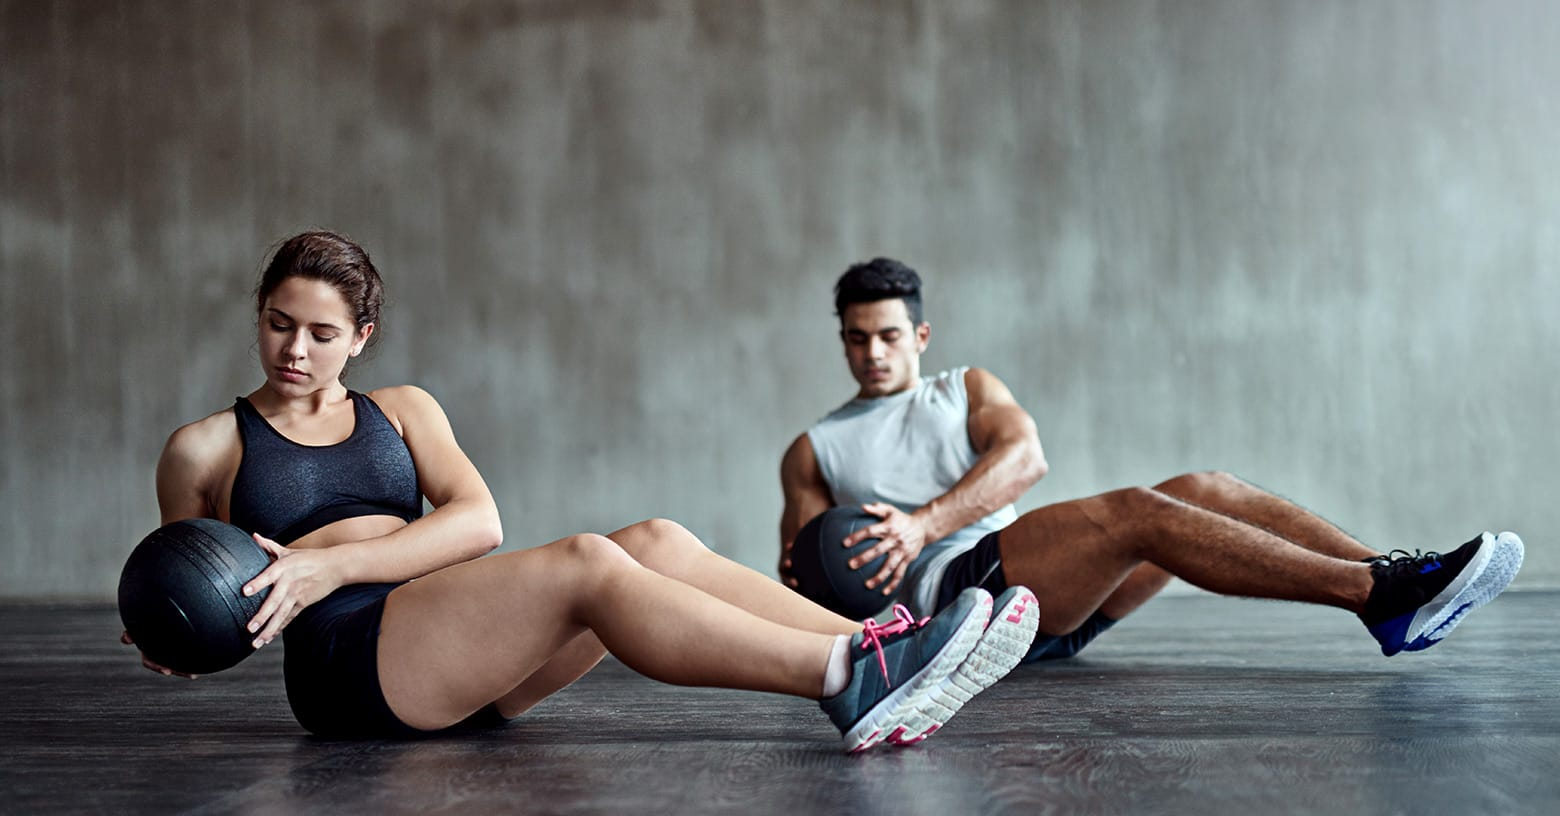 Couples Workout / Workout für Paare